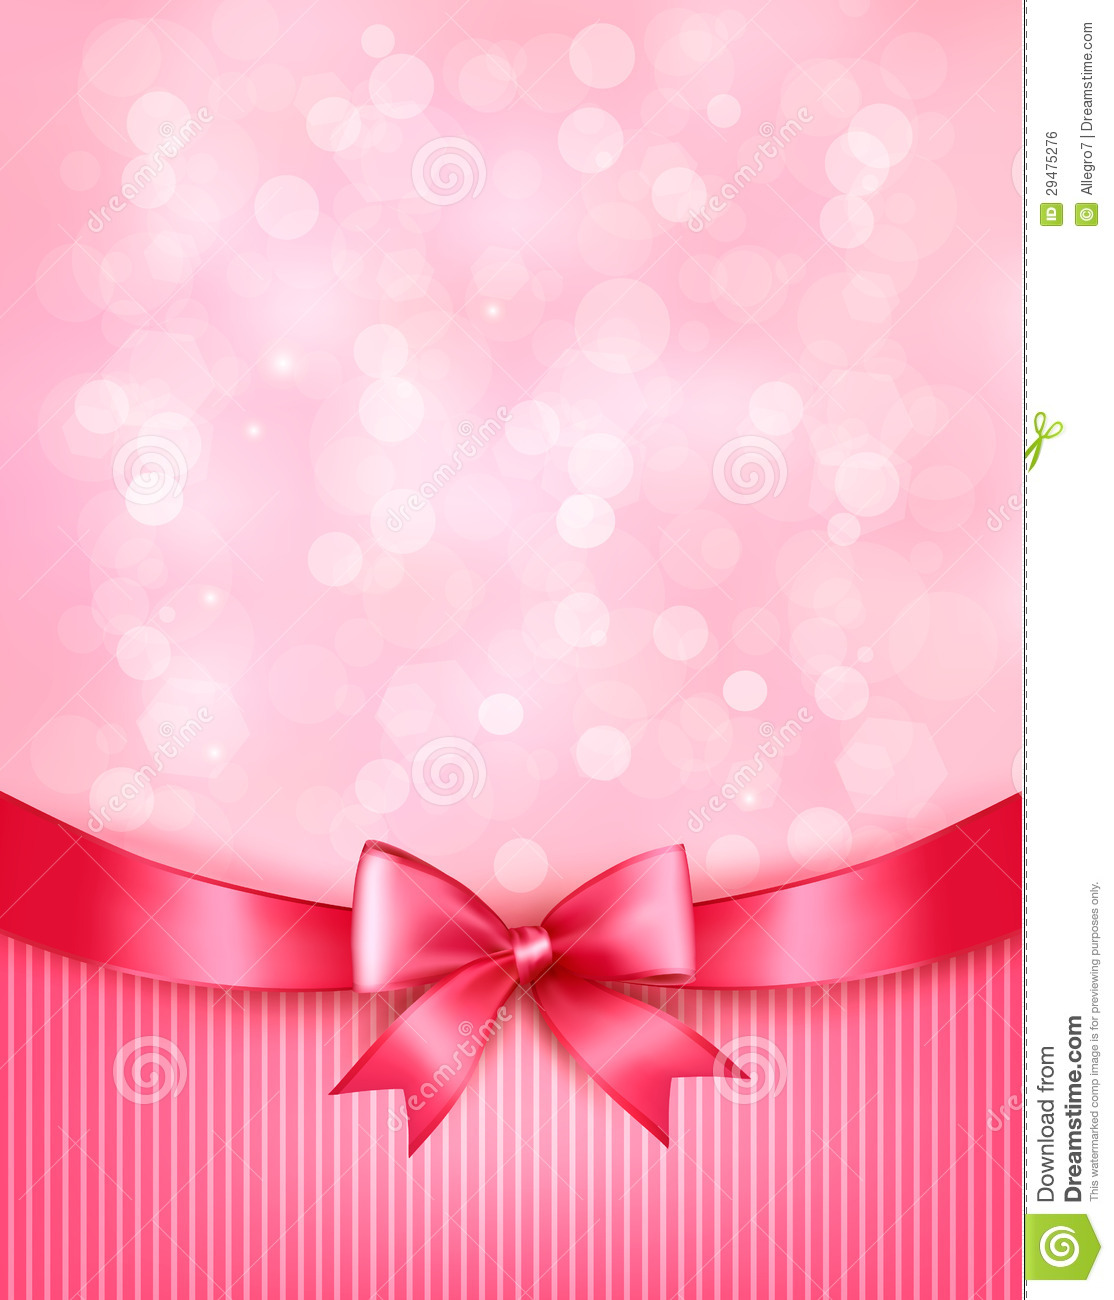 Holiday Background With Gift Pink Bow And Ribbon. Royalty Free Stock ...